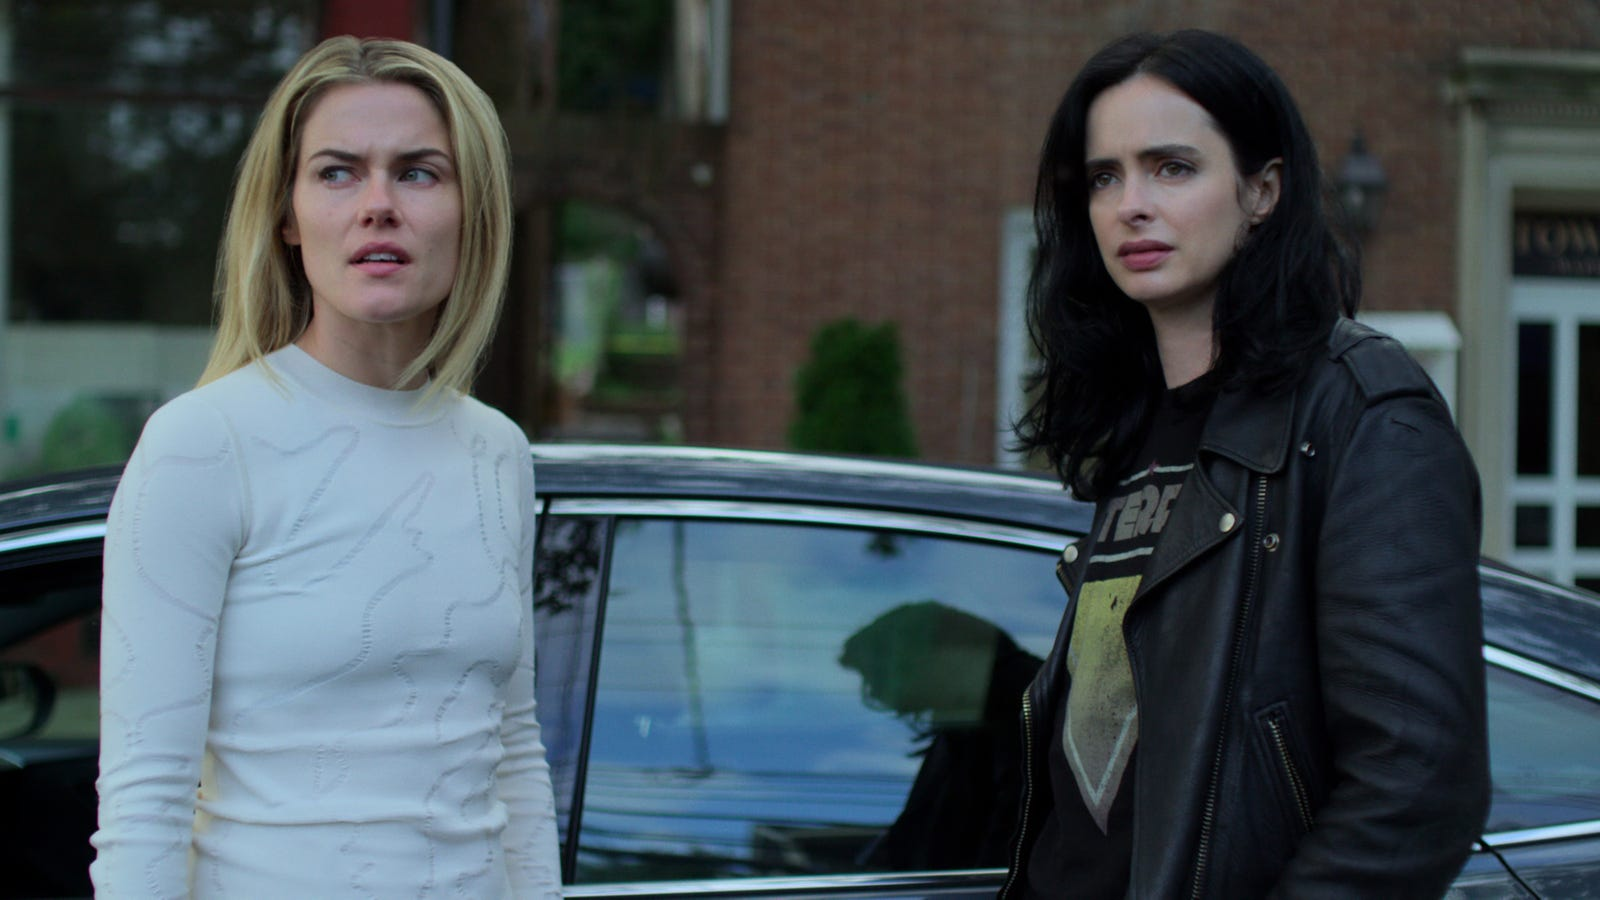 4 Things We Loved, and 3 We Didn't Like So Much About Jessica Jones Season 3